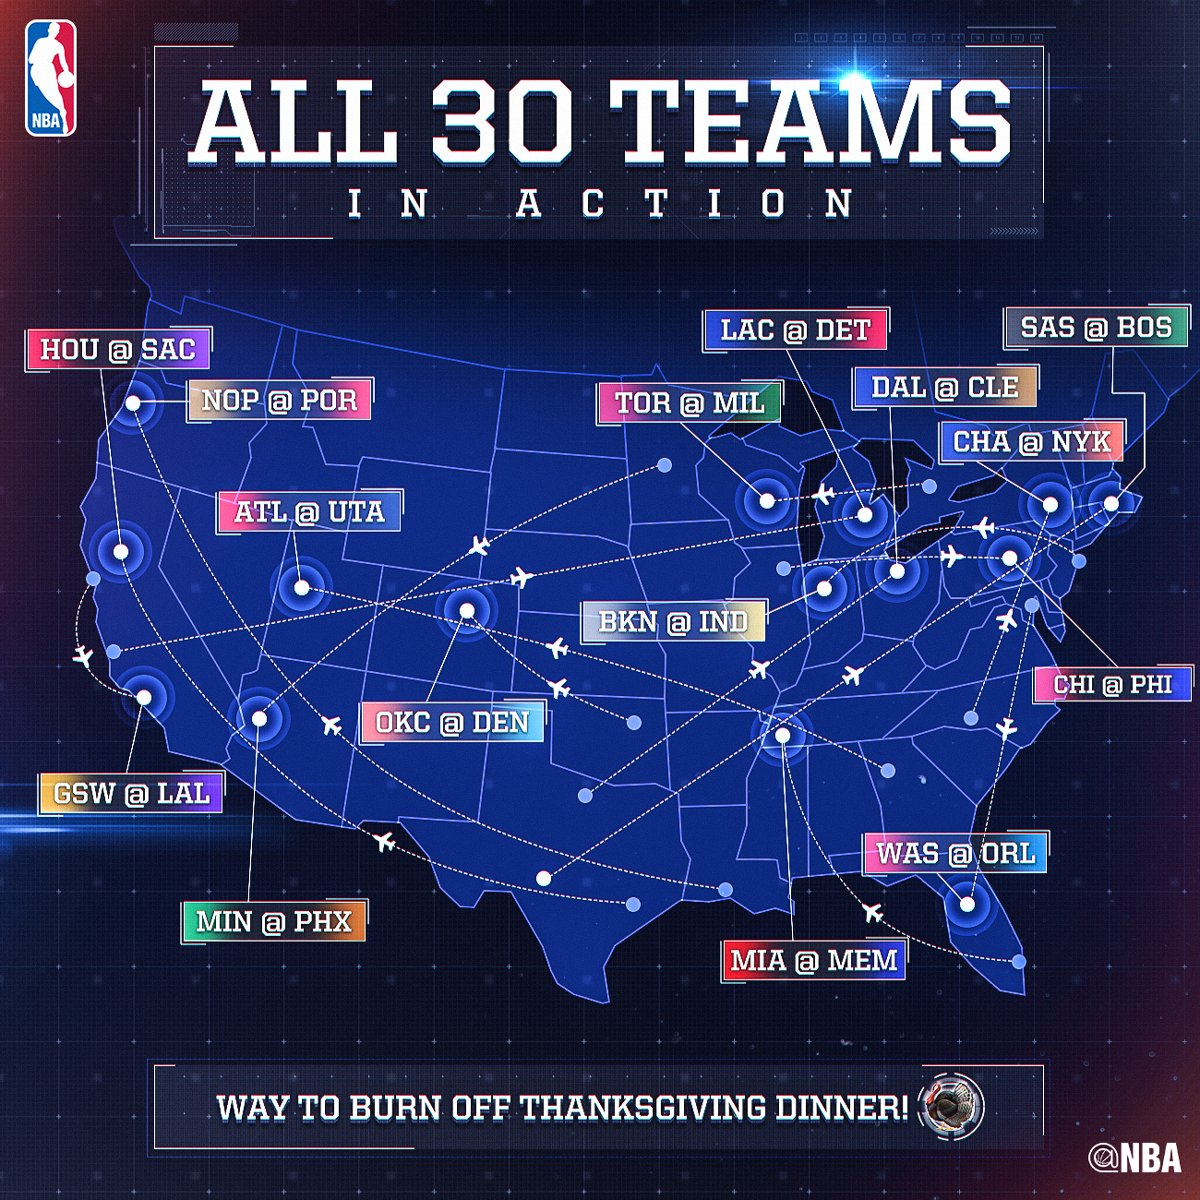 NBA On Twitter ALL NBA TEAMS ARE IN ACTION TODAY - Nba teams map